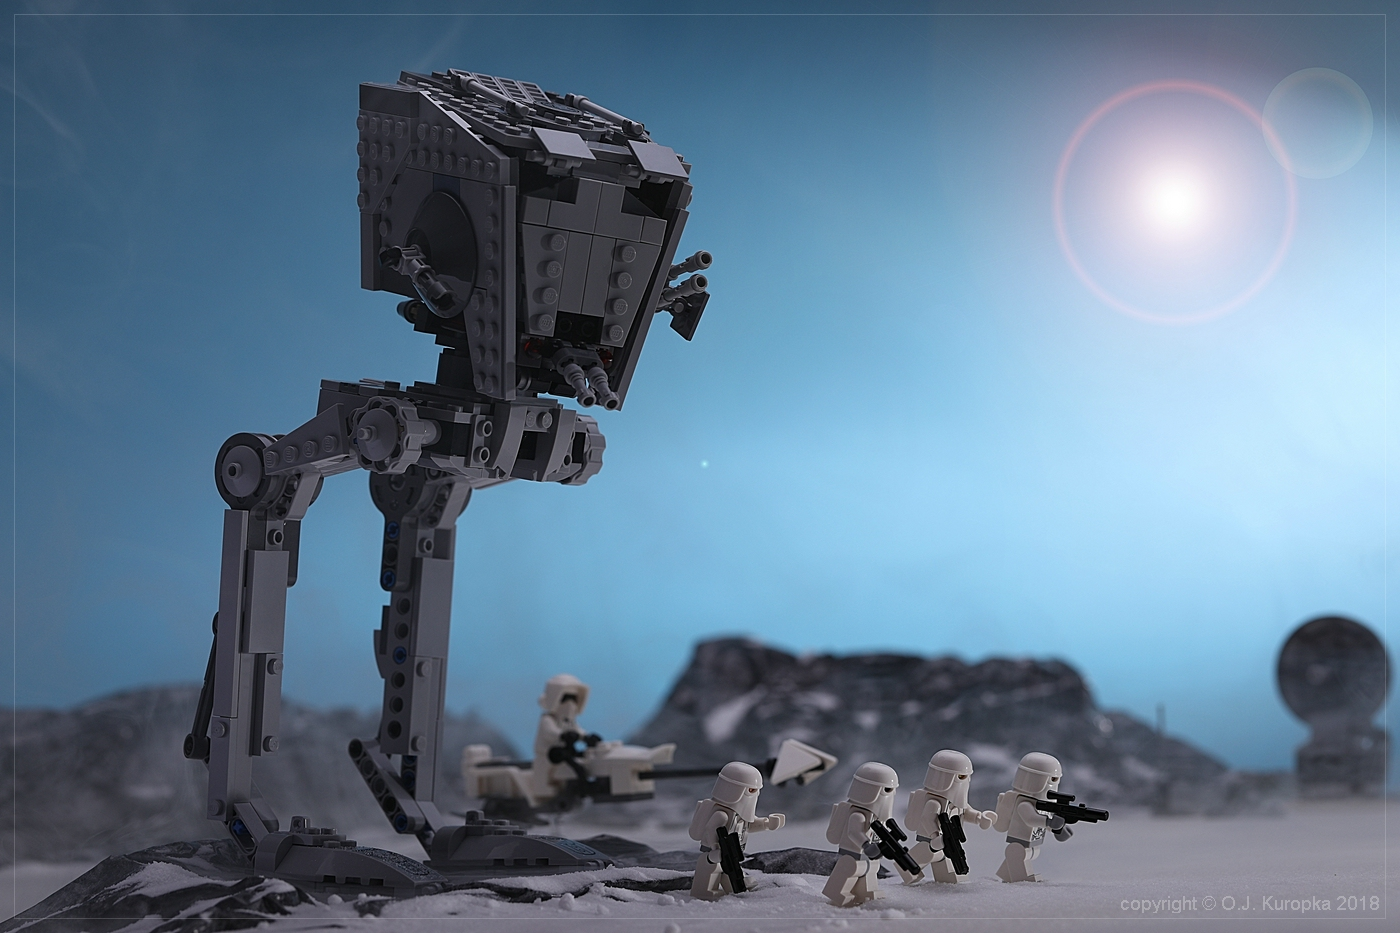 ATTACK ON ECHO BASE